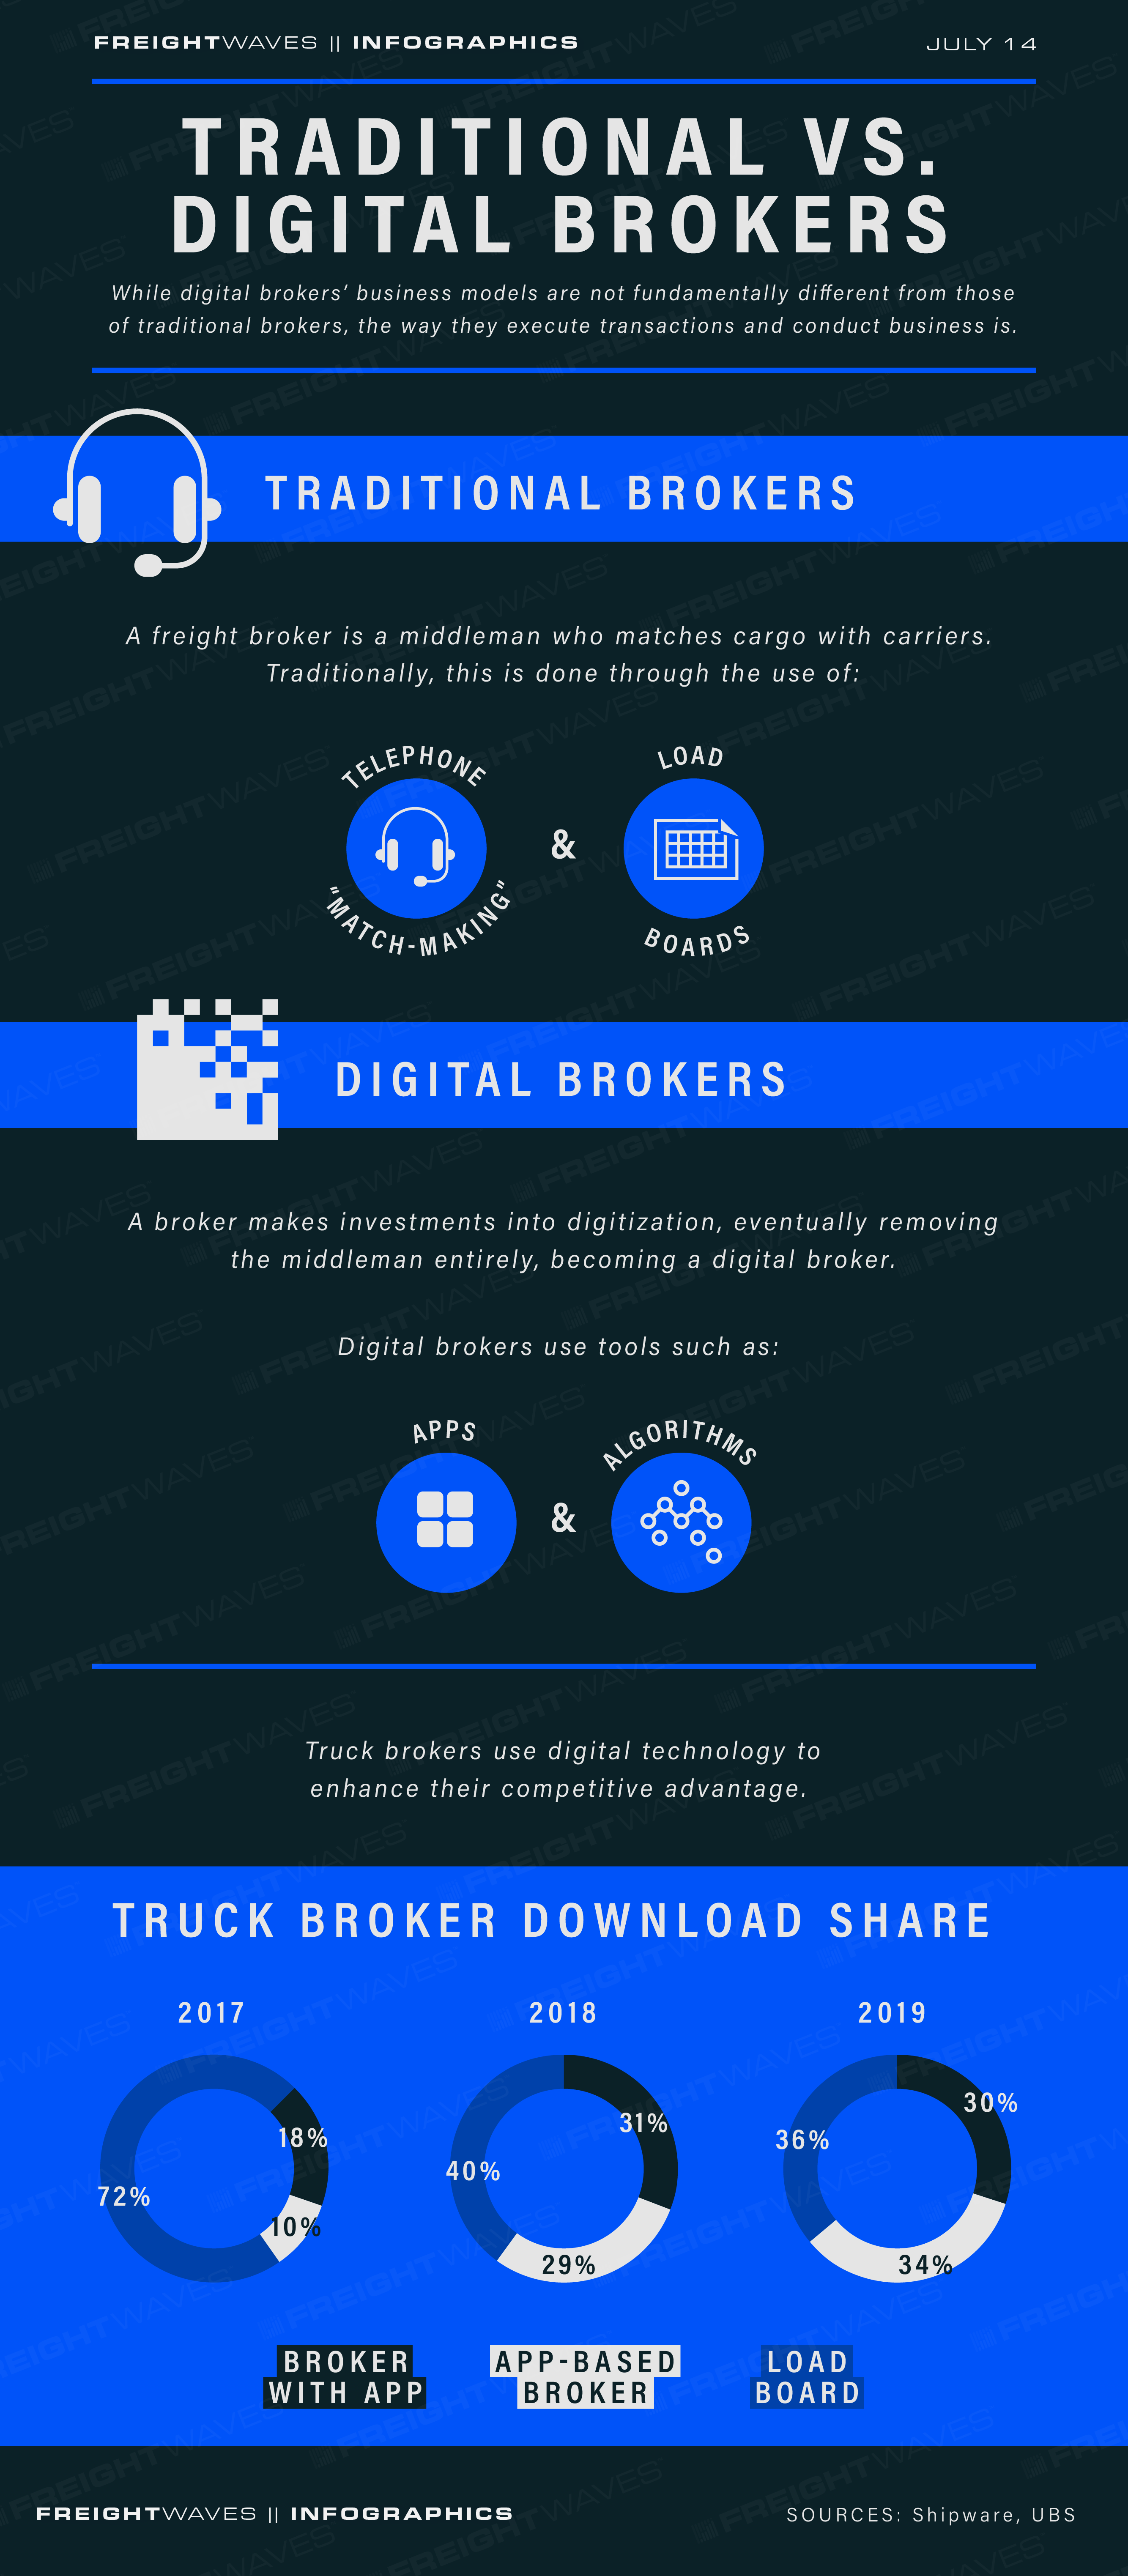 FreightWaves Daily Infographic